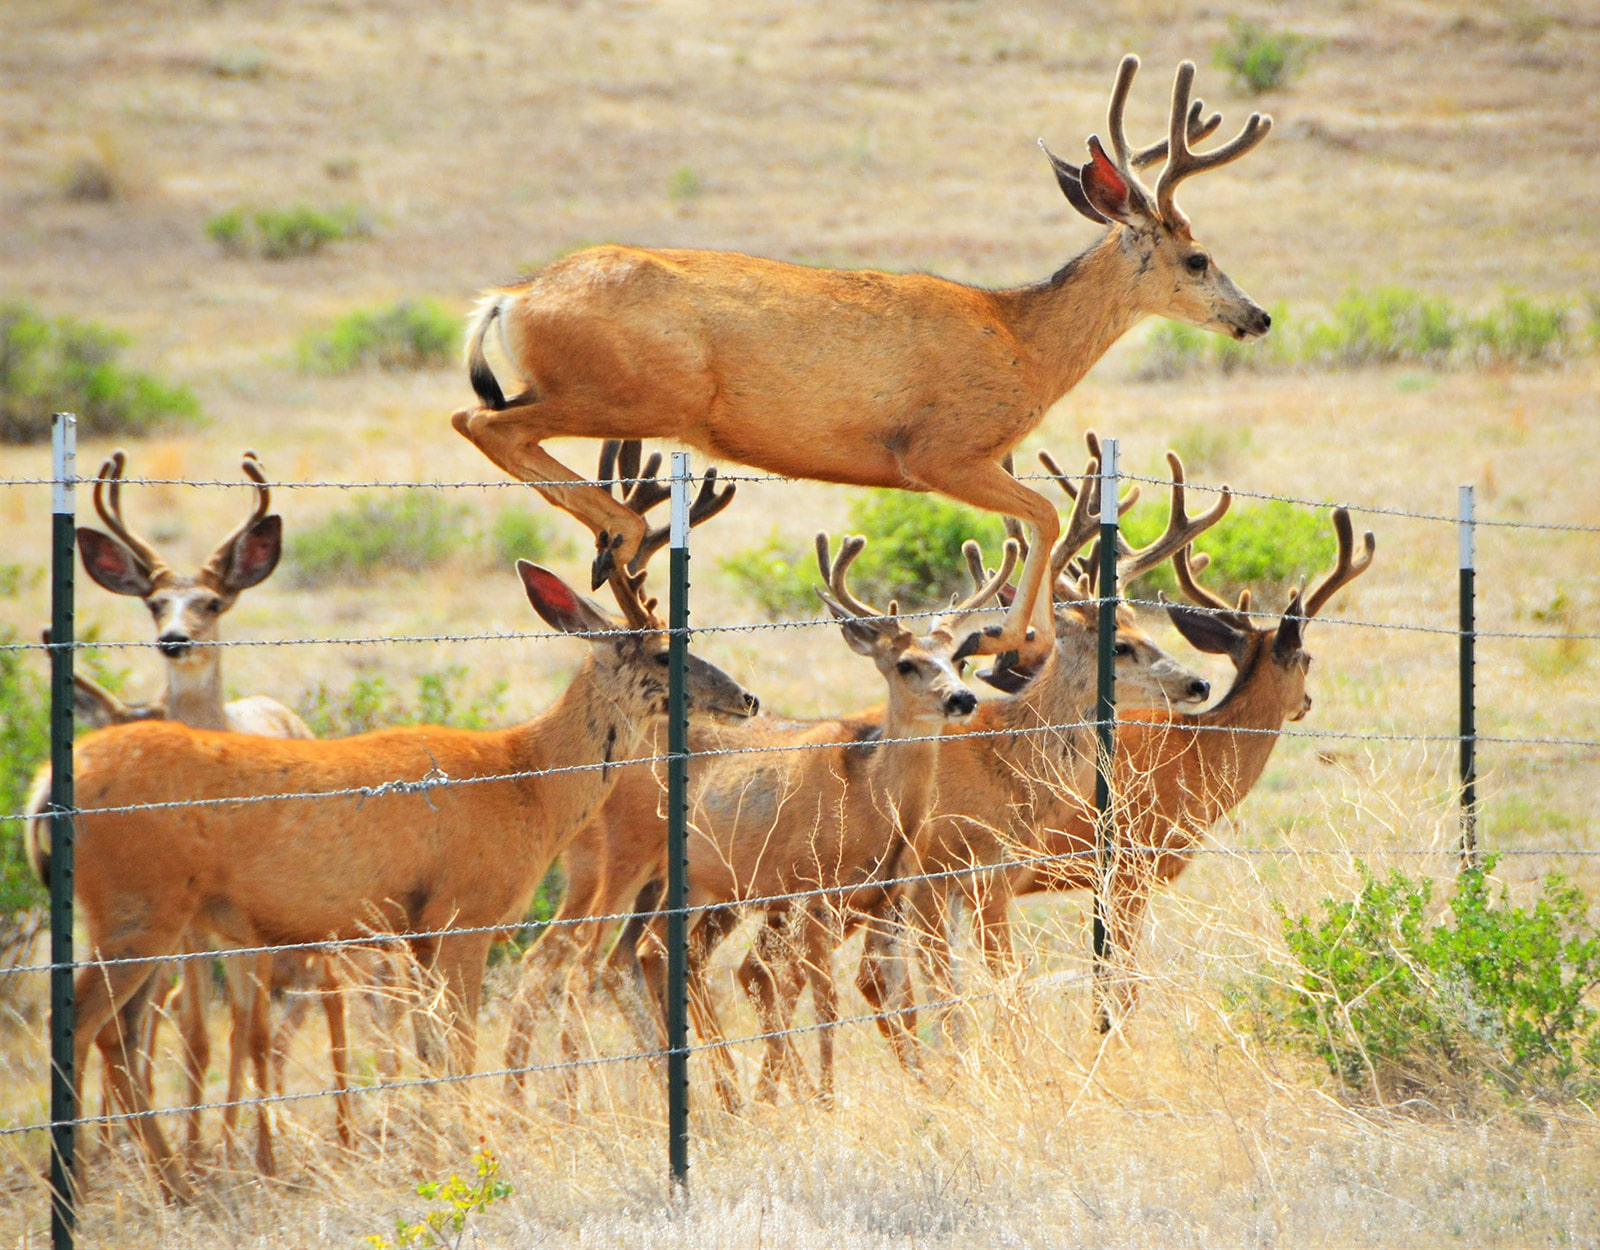 Deer jumping over a wire fence